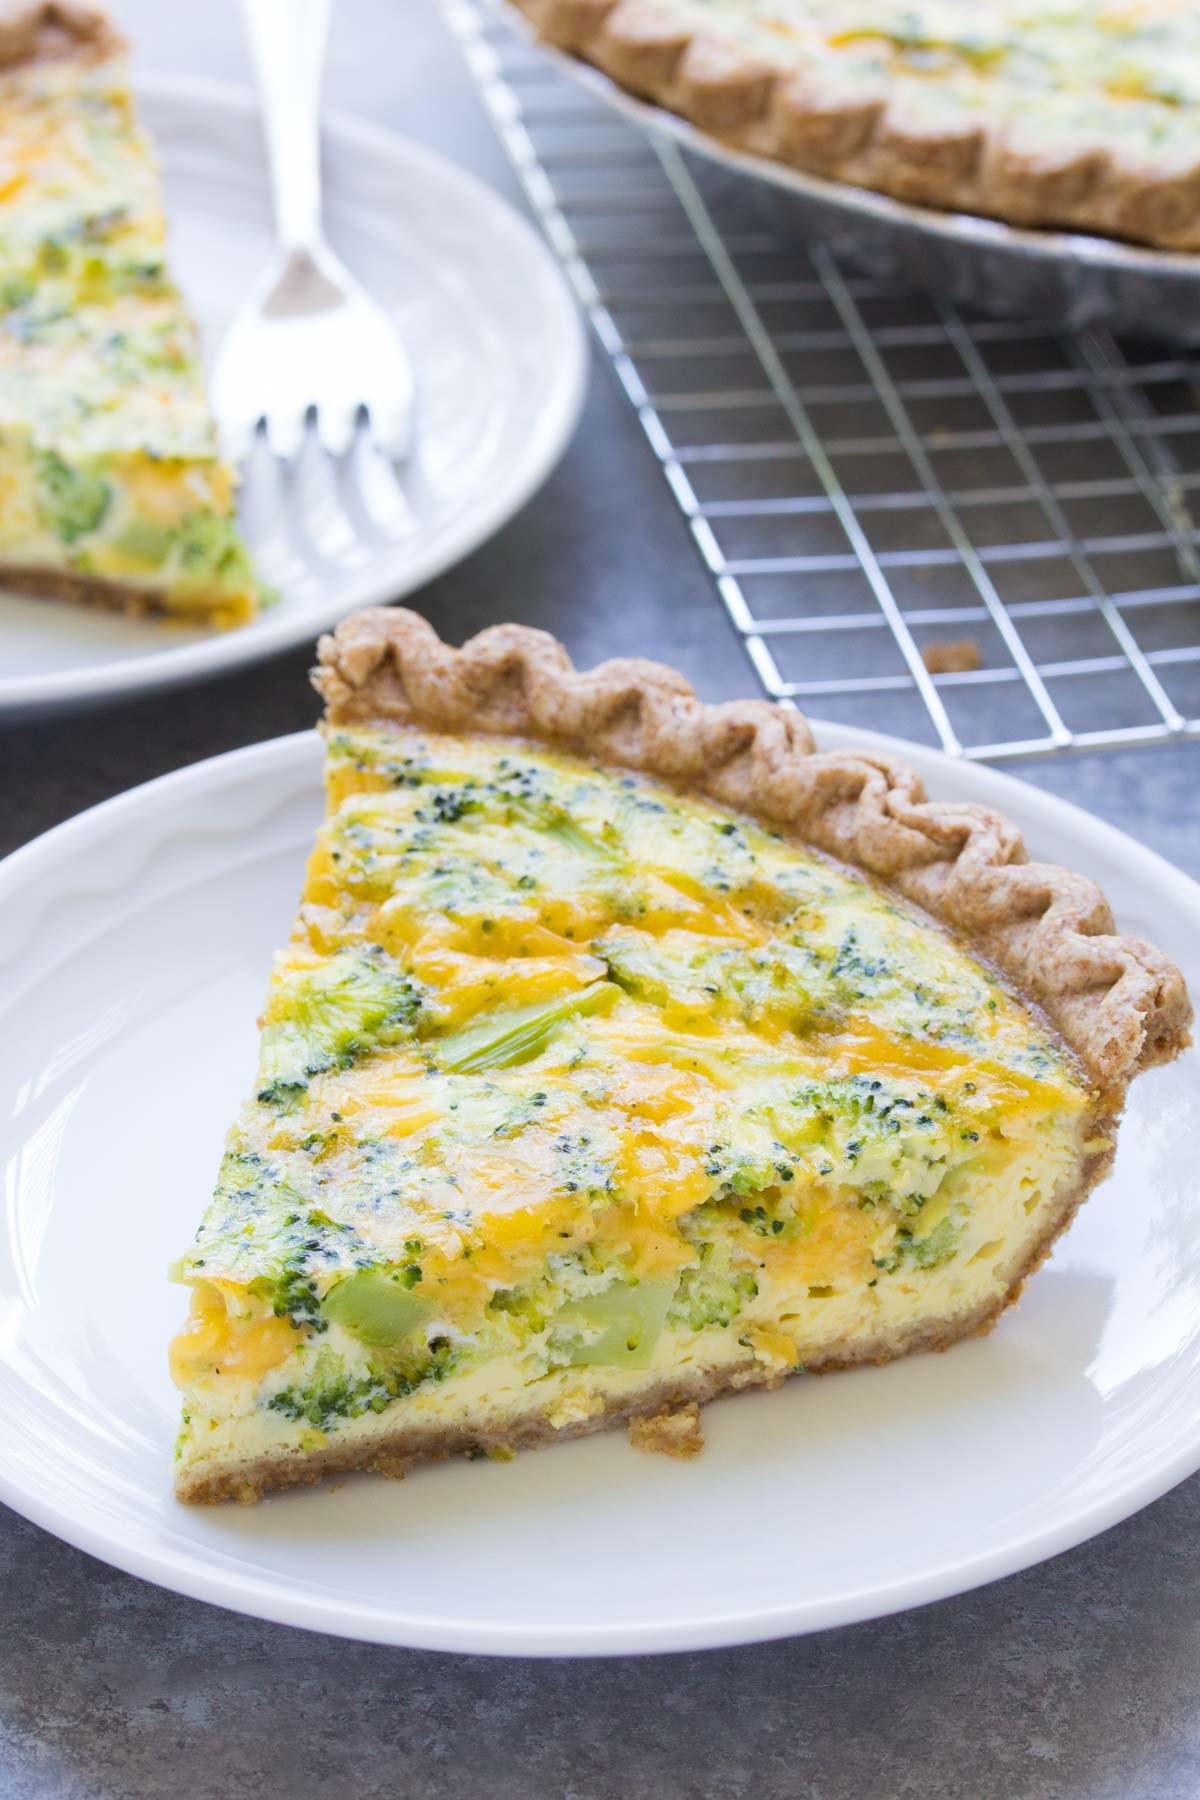 Easy Broccoli Cheese Quiche 5 Ingredients